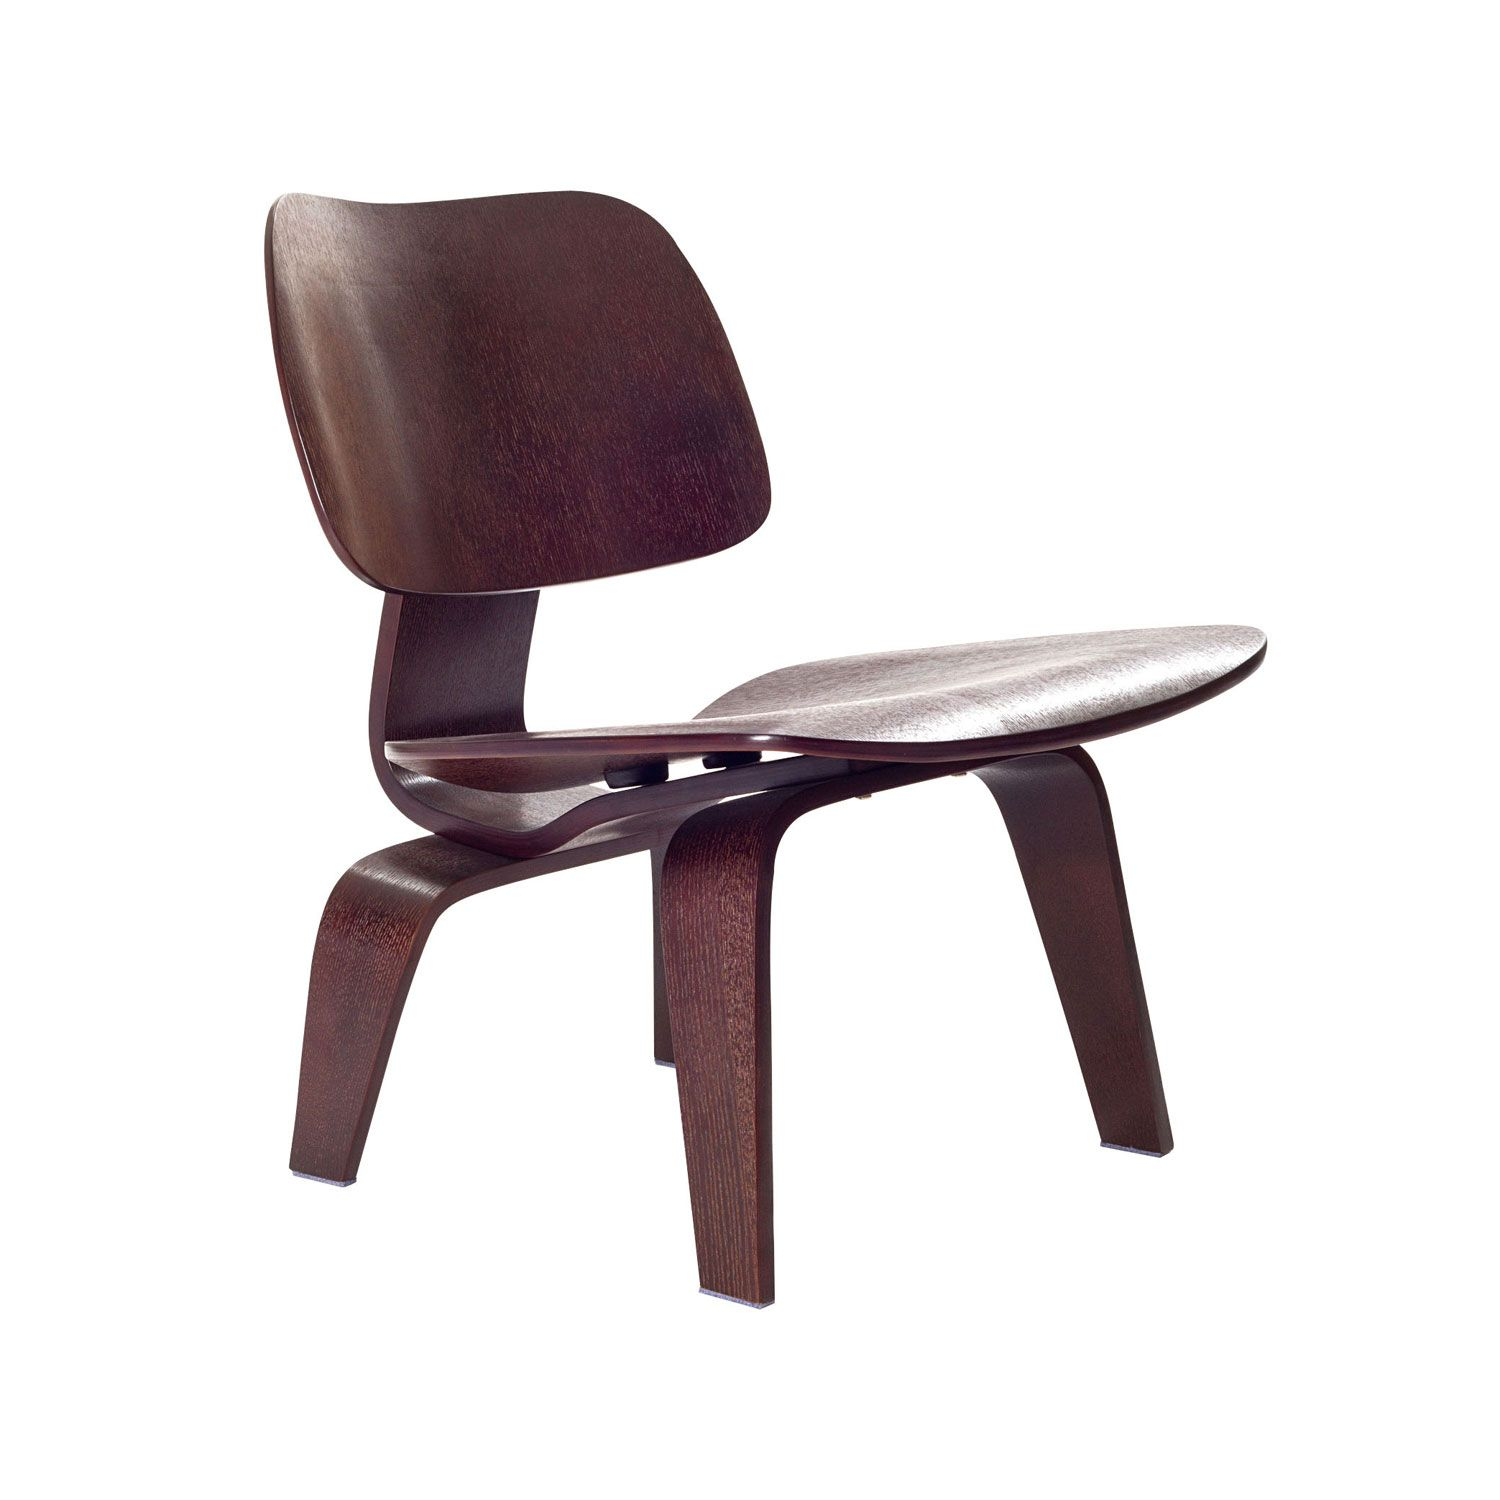 Graceful, Modern, And Ergonomic, This Chair Is A Great Way To Add Some. Living  Room ... Amazing Ideas